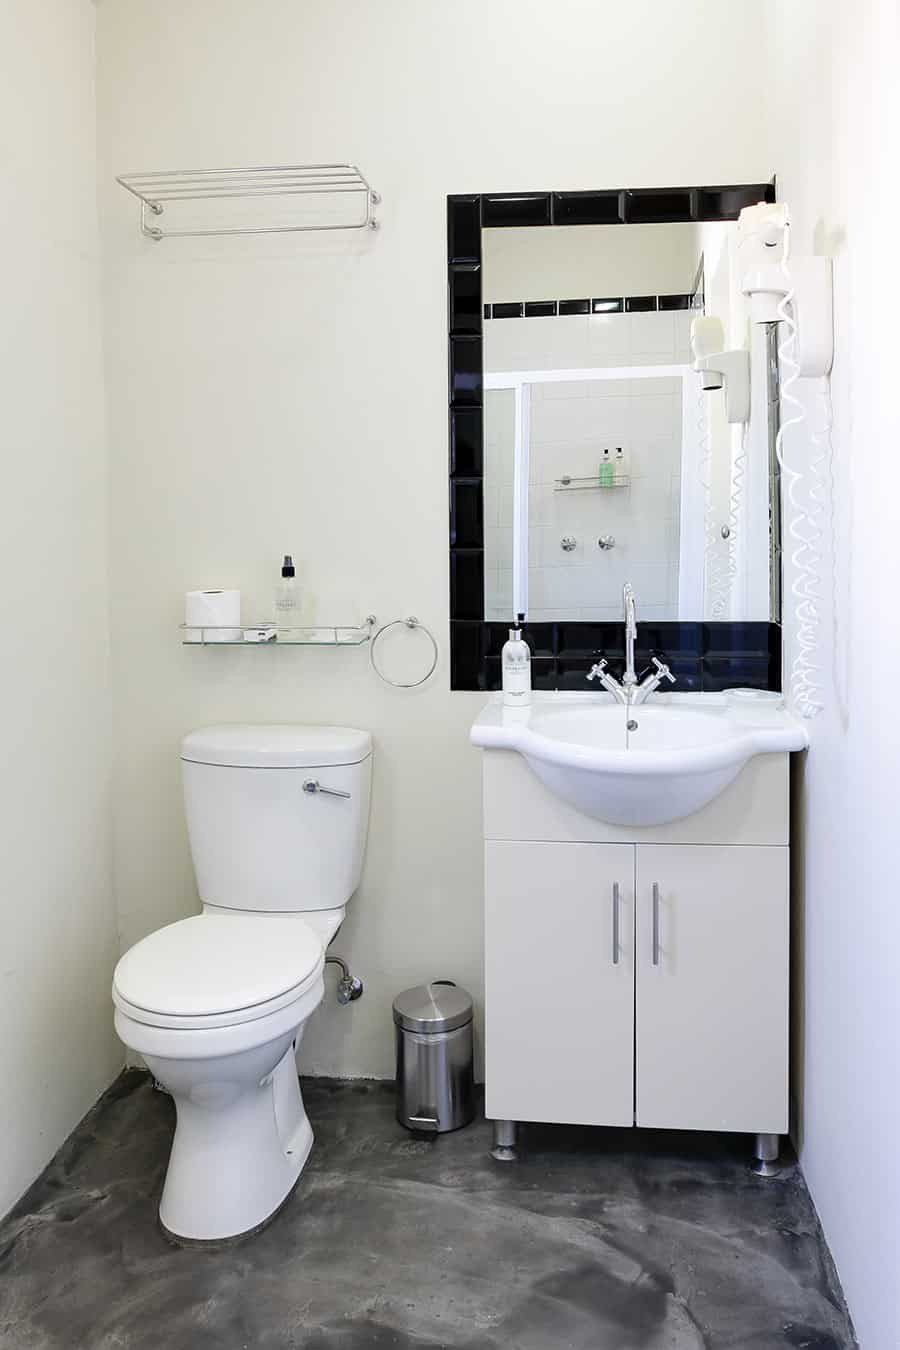 Self Catering Apartment bathroom